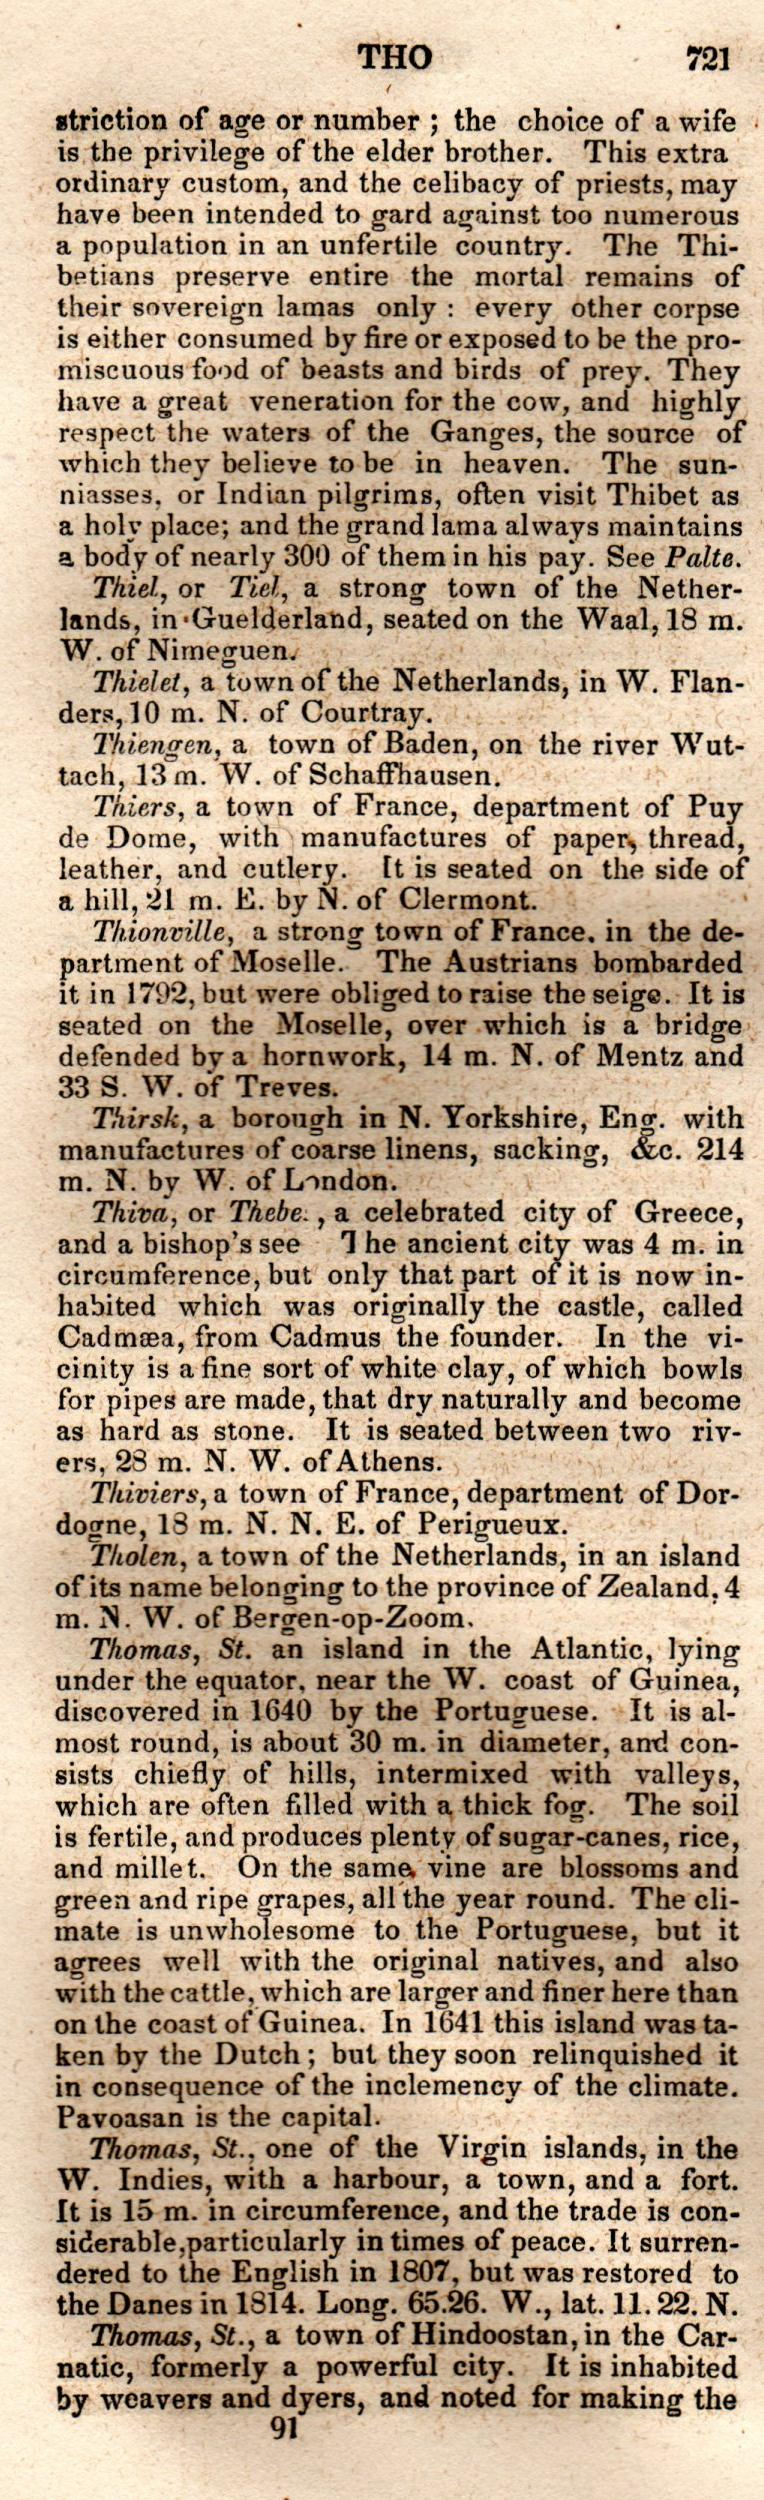 Brookes' Universal Gazetteer (1850), Page  721  Left Column